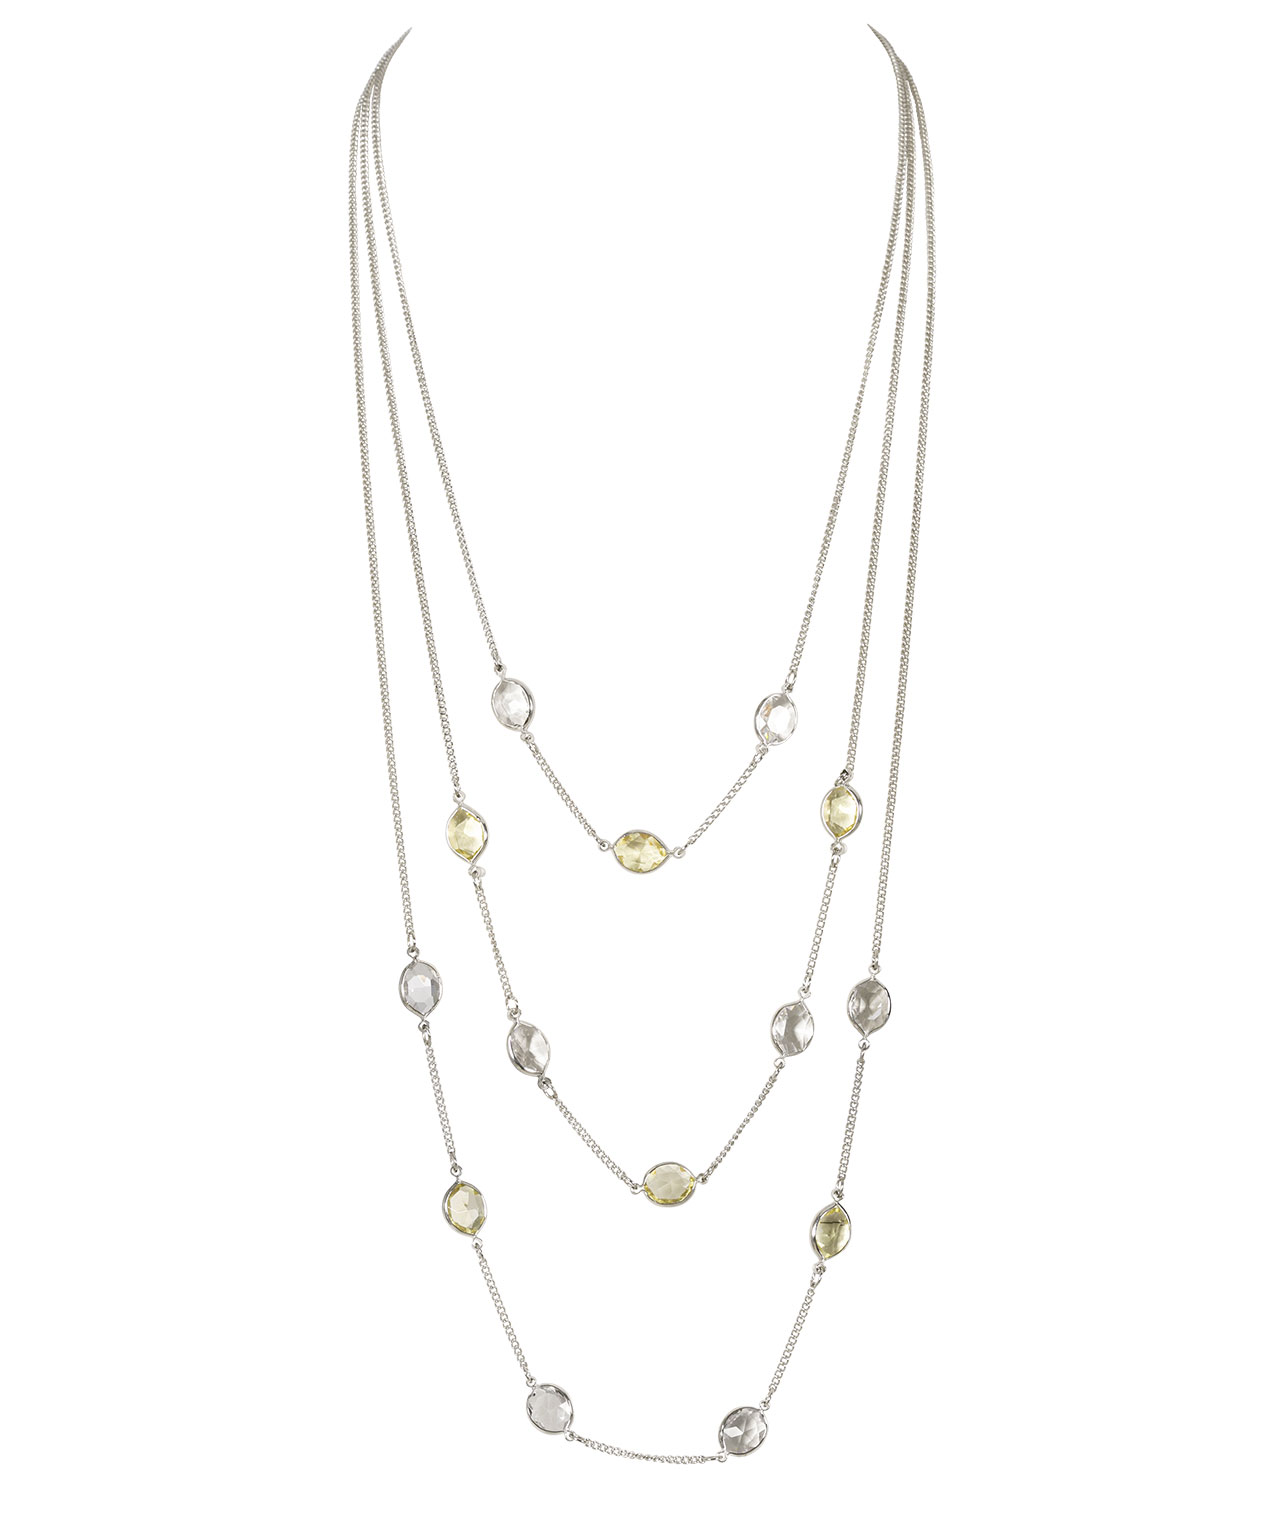 tiered marcella design necklaces modern shop kona necklace